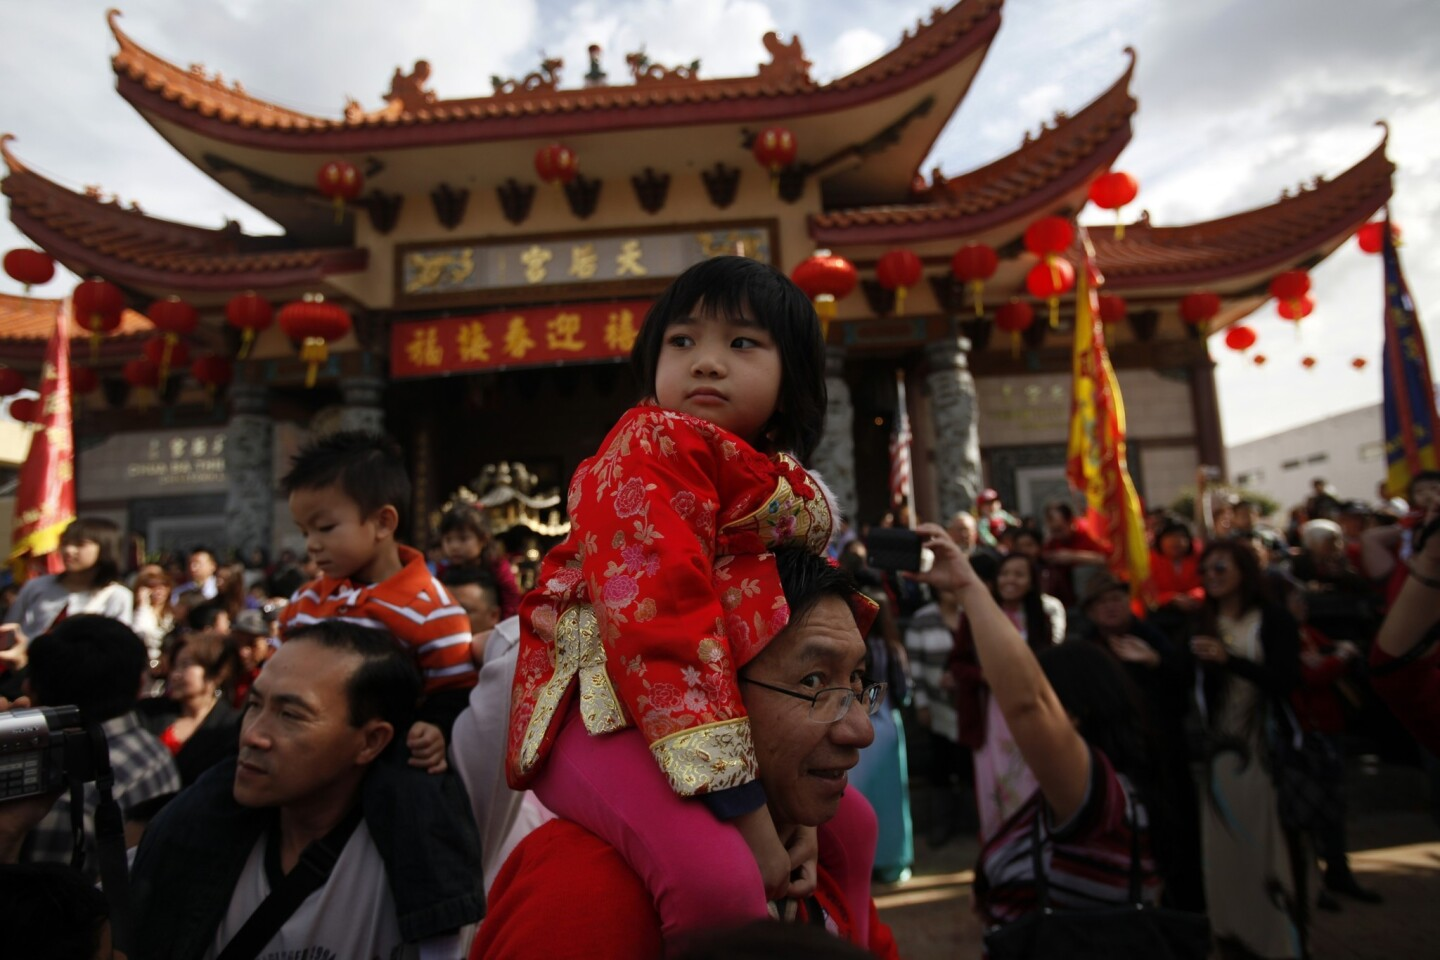 Thousands gather at the Thien Hau Temple in Los Angeles' Chinatown to celebrate Chinese New Year.